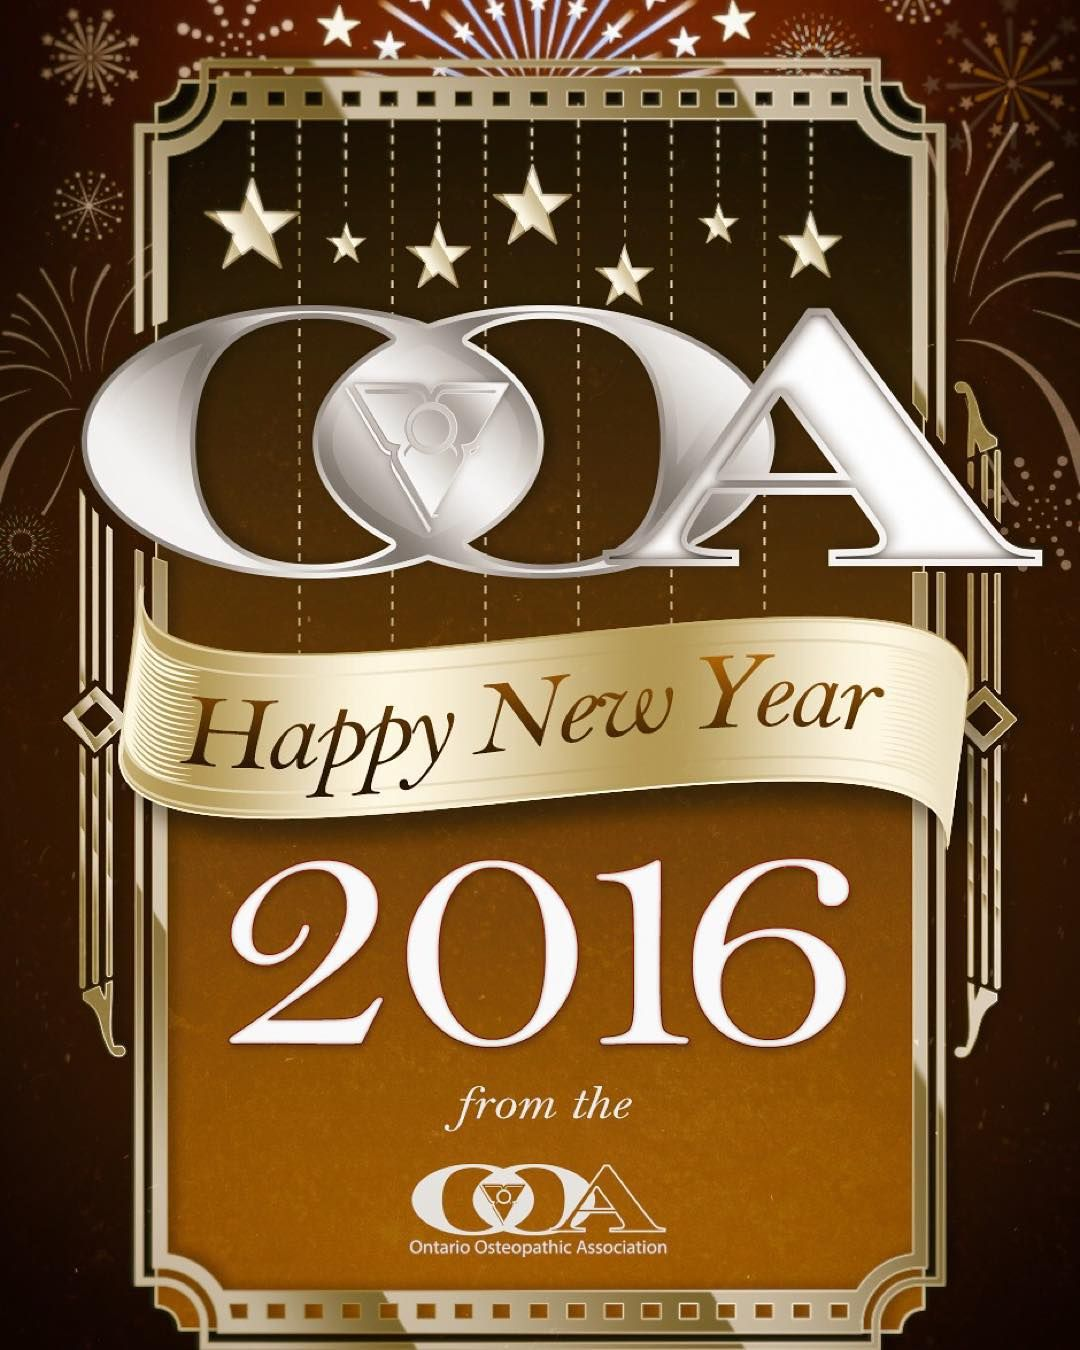 Happy new year from the ontario osteopathic association